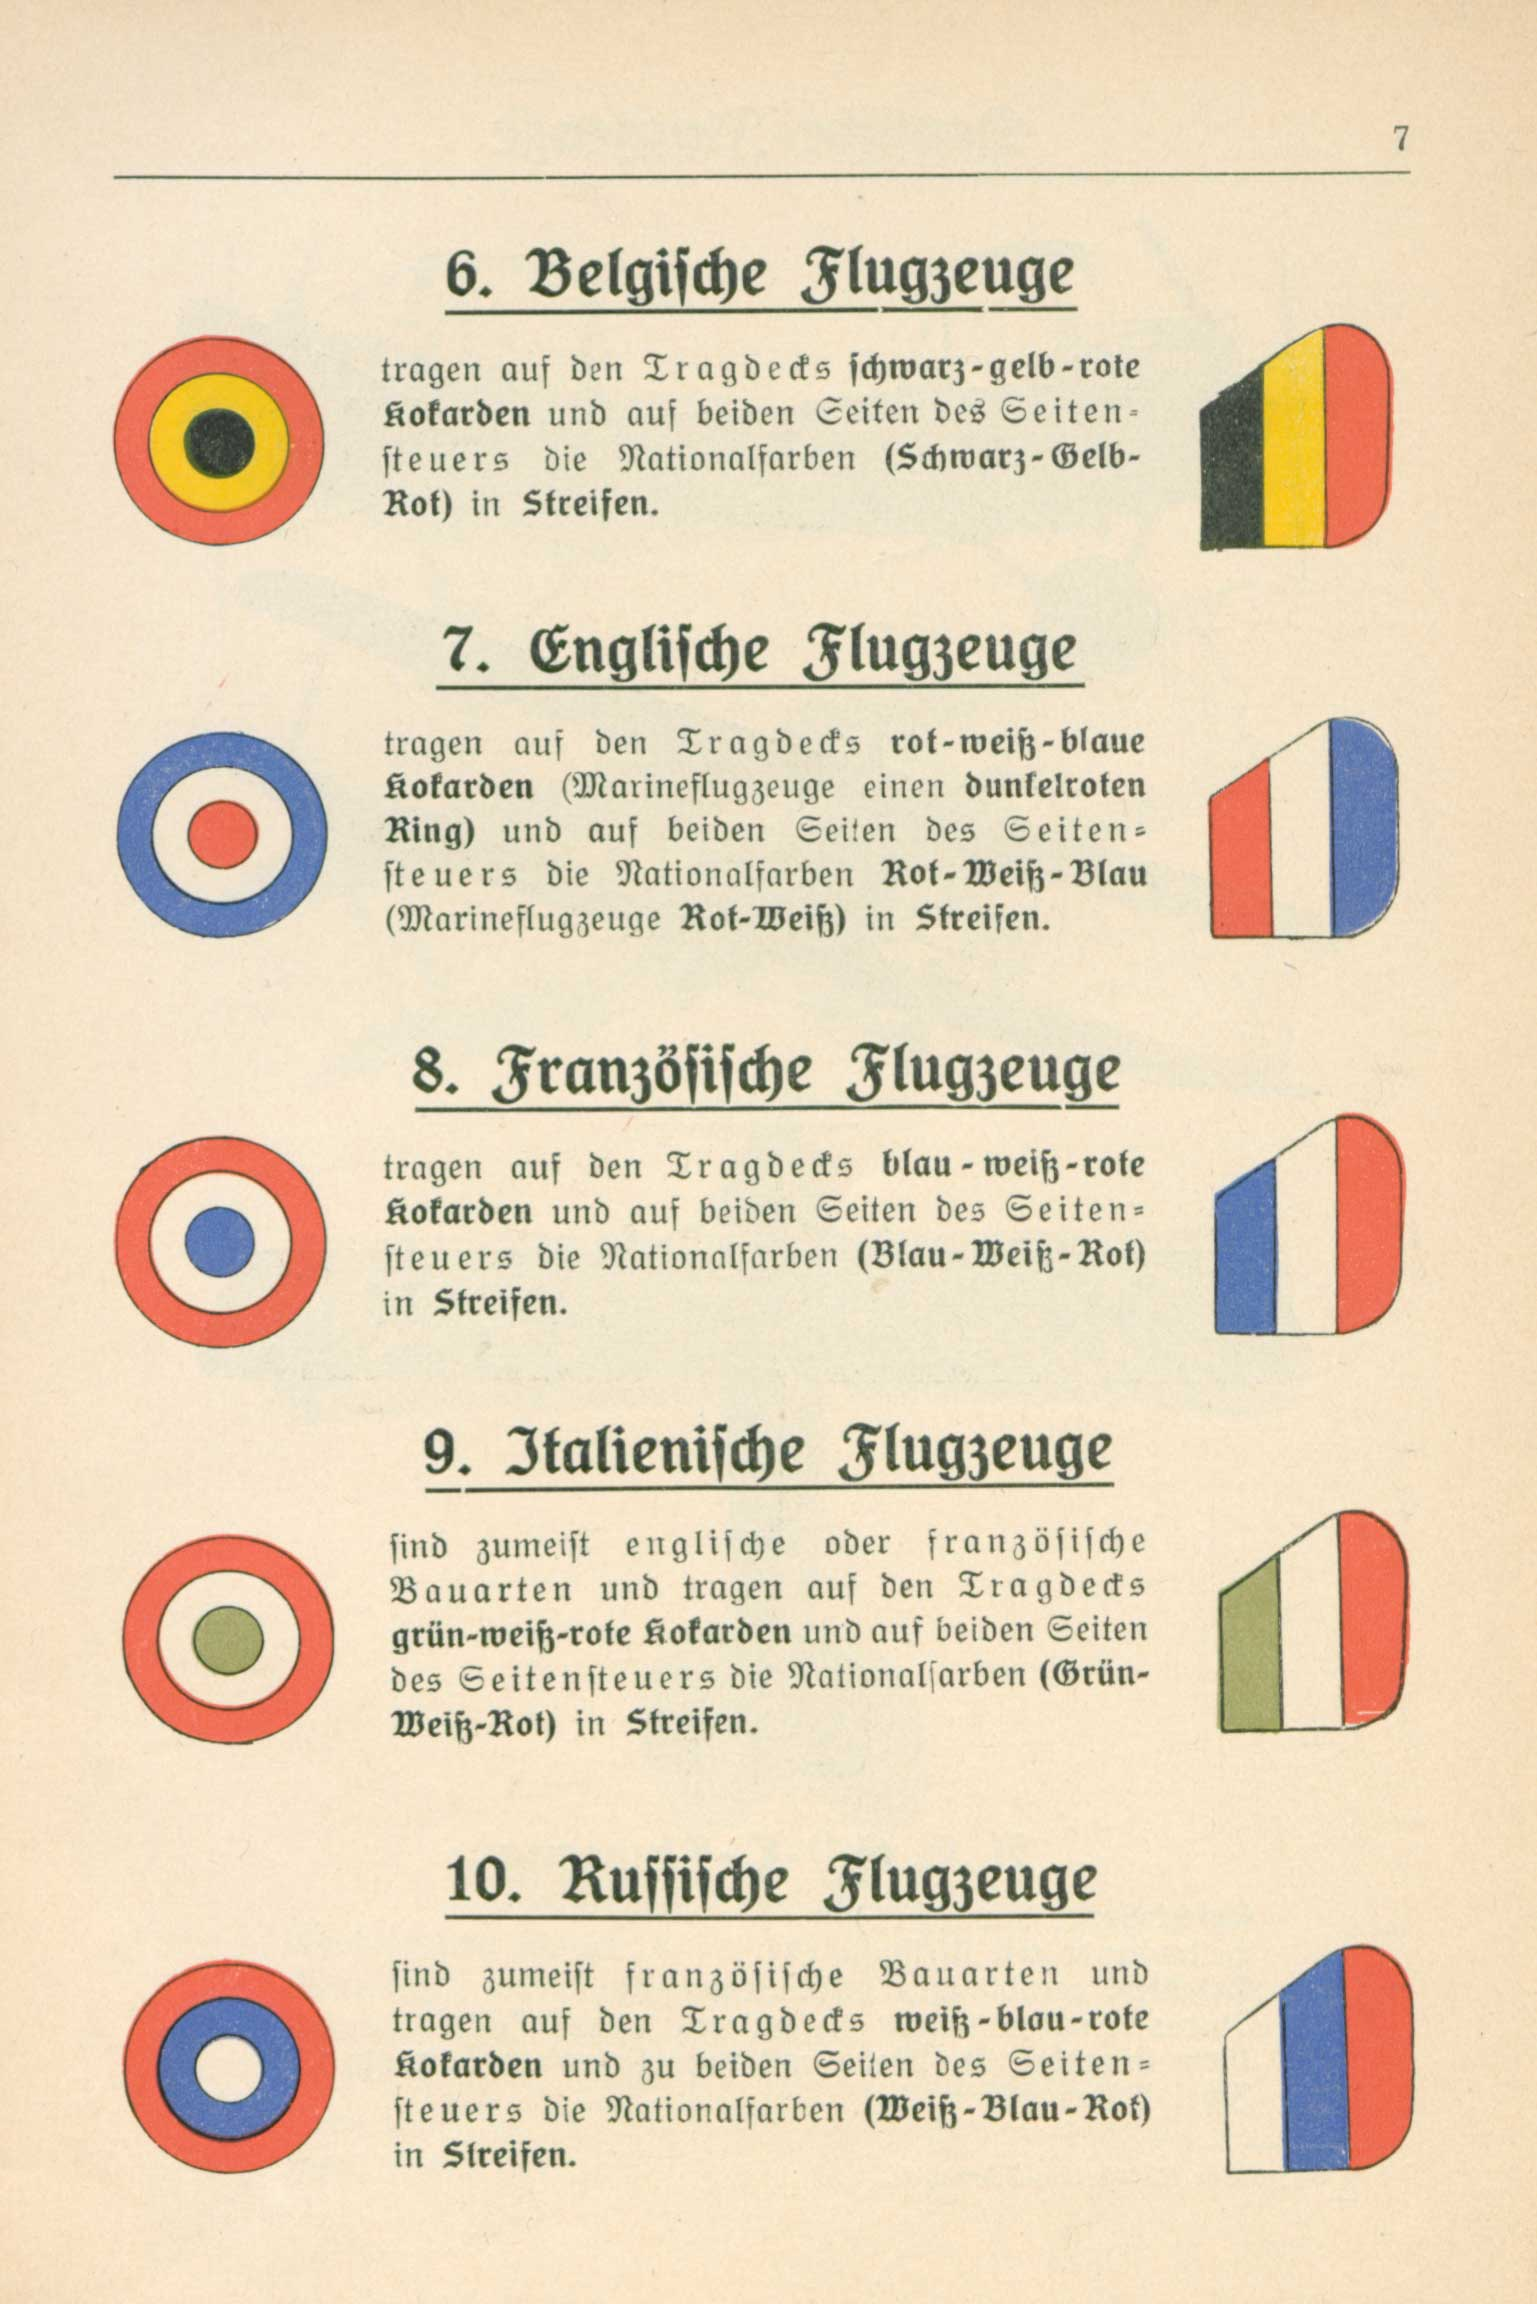 Illustrations of German and enemy aircraft